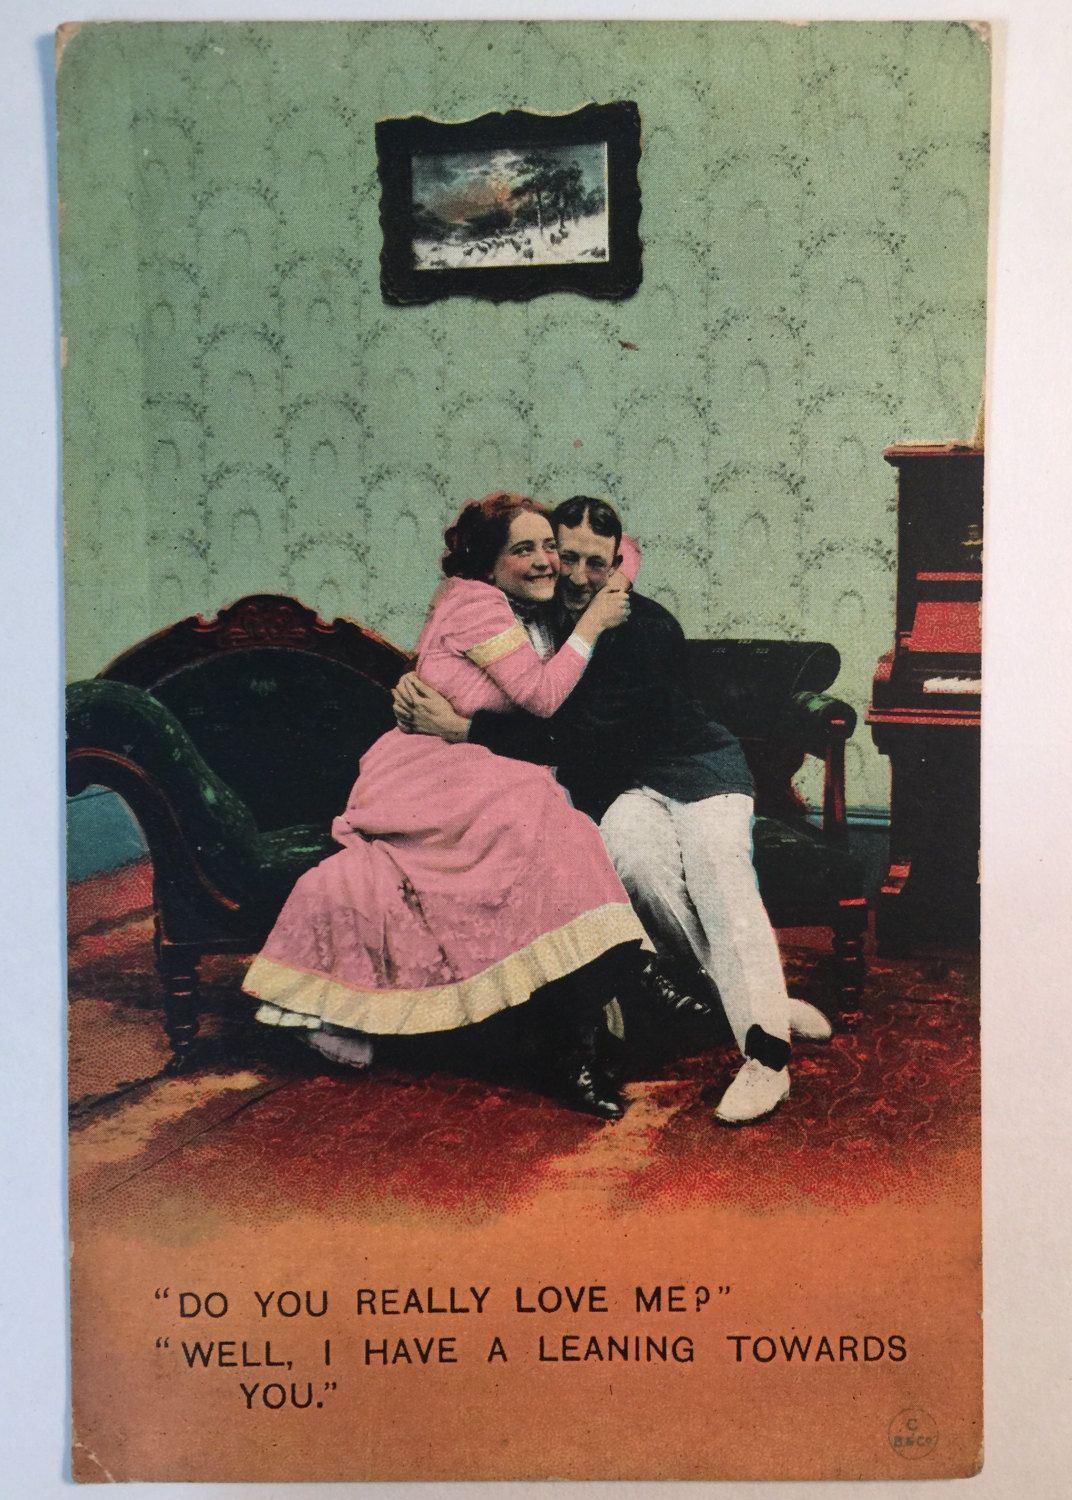 Couple Hugs in the Parlor - Vintage Postcard (1911) by MattiCake on Etsy